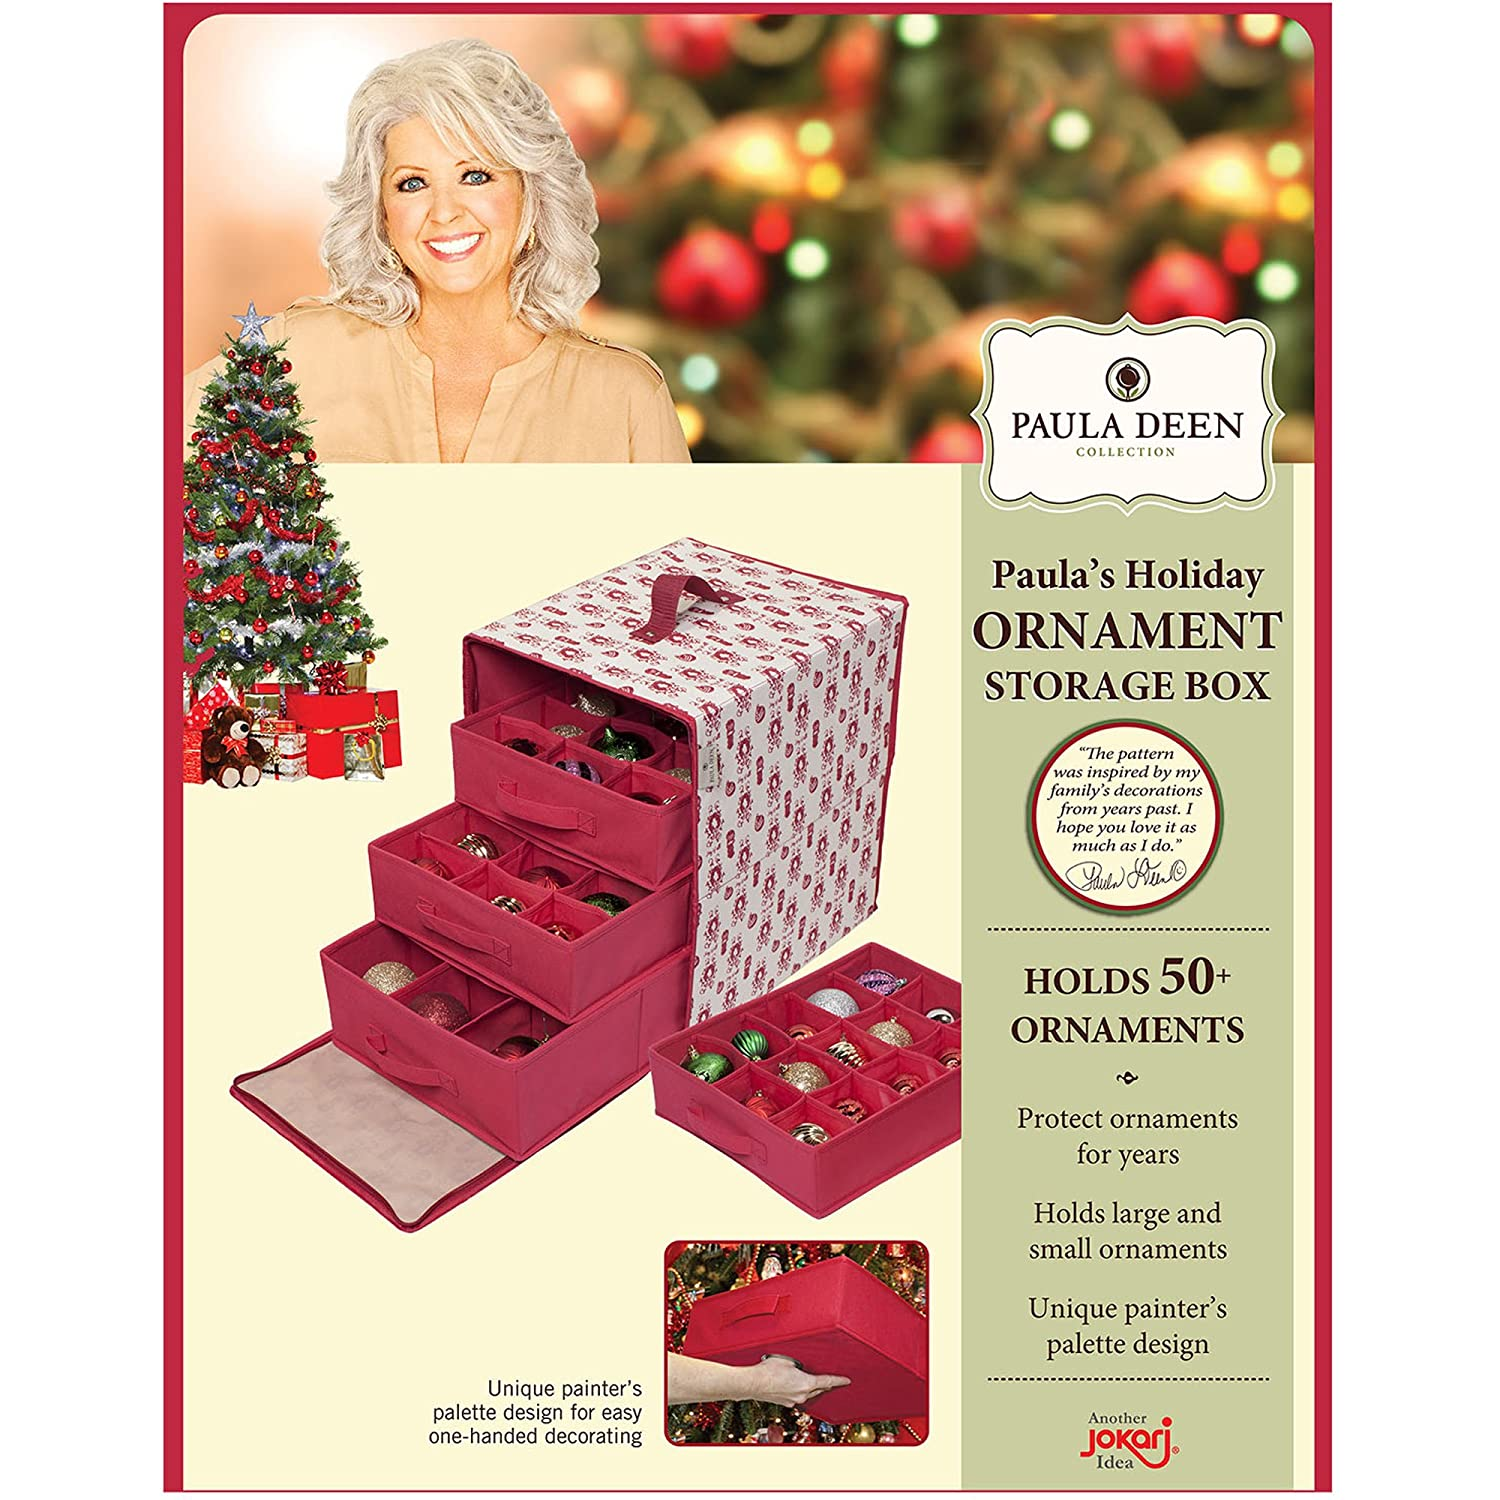 amazoncom paula deen ornament storage container closet organizer perfect holder for christmas tree or holiday decorations hard cube chest box